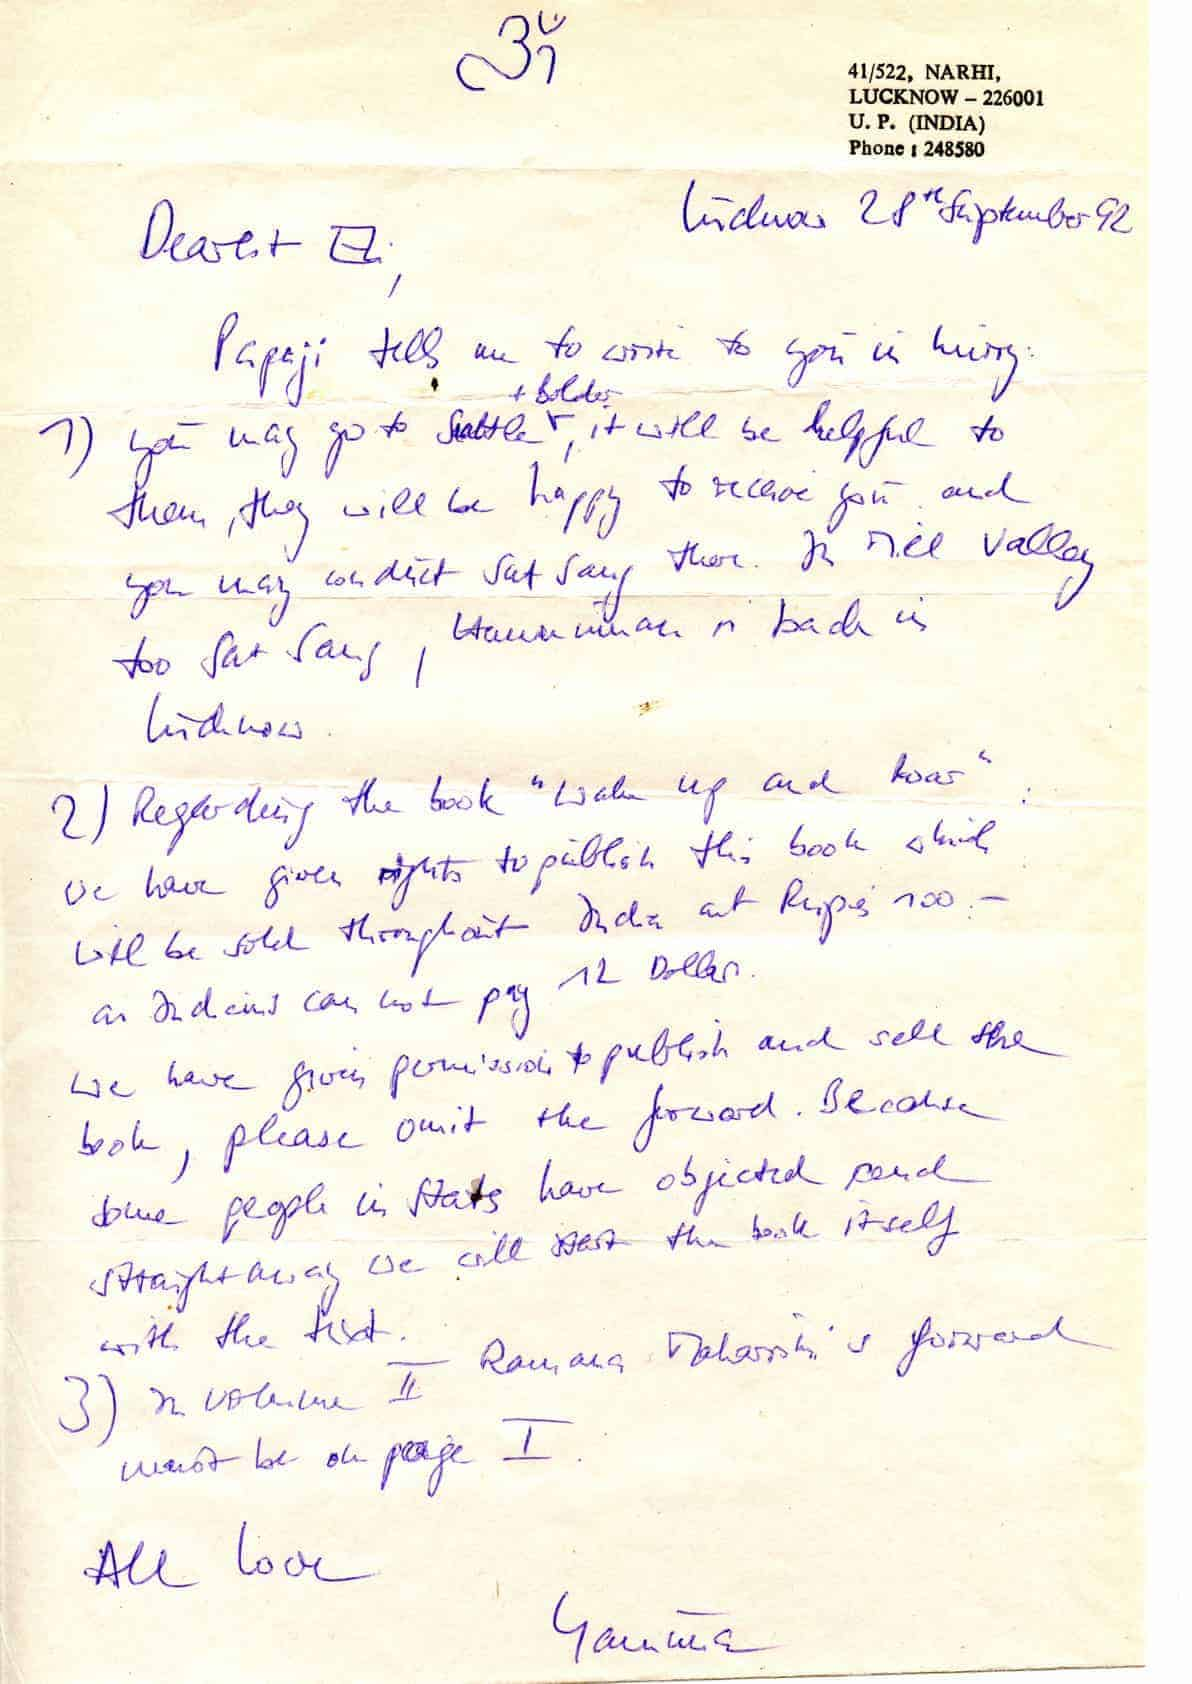 Letter from Papaji to Eli